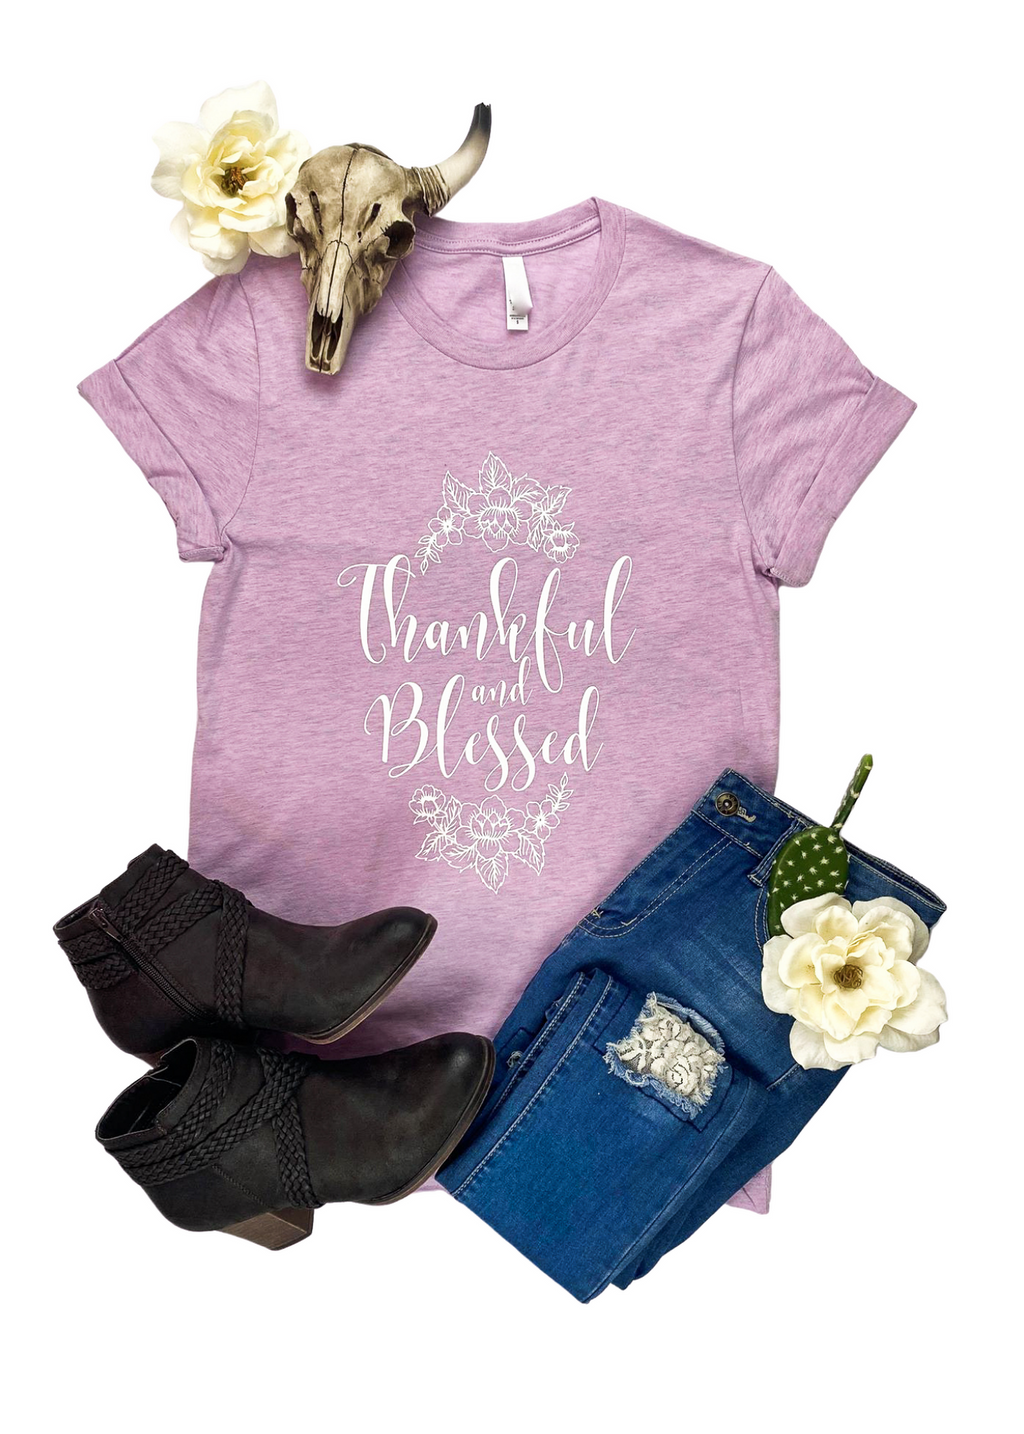 "Lilac Short Sleeve Tee with ""Thankful & Blessed"" and Floral Graphic in White Ink in the center"